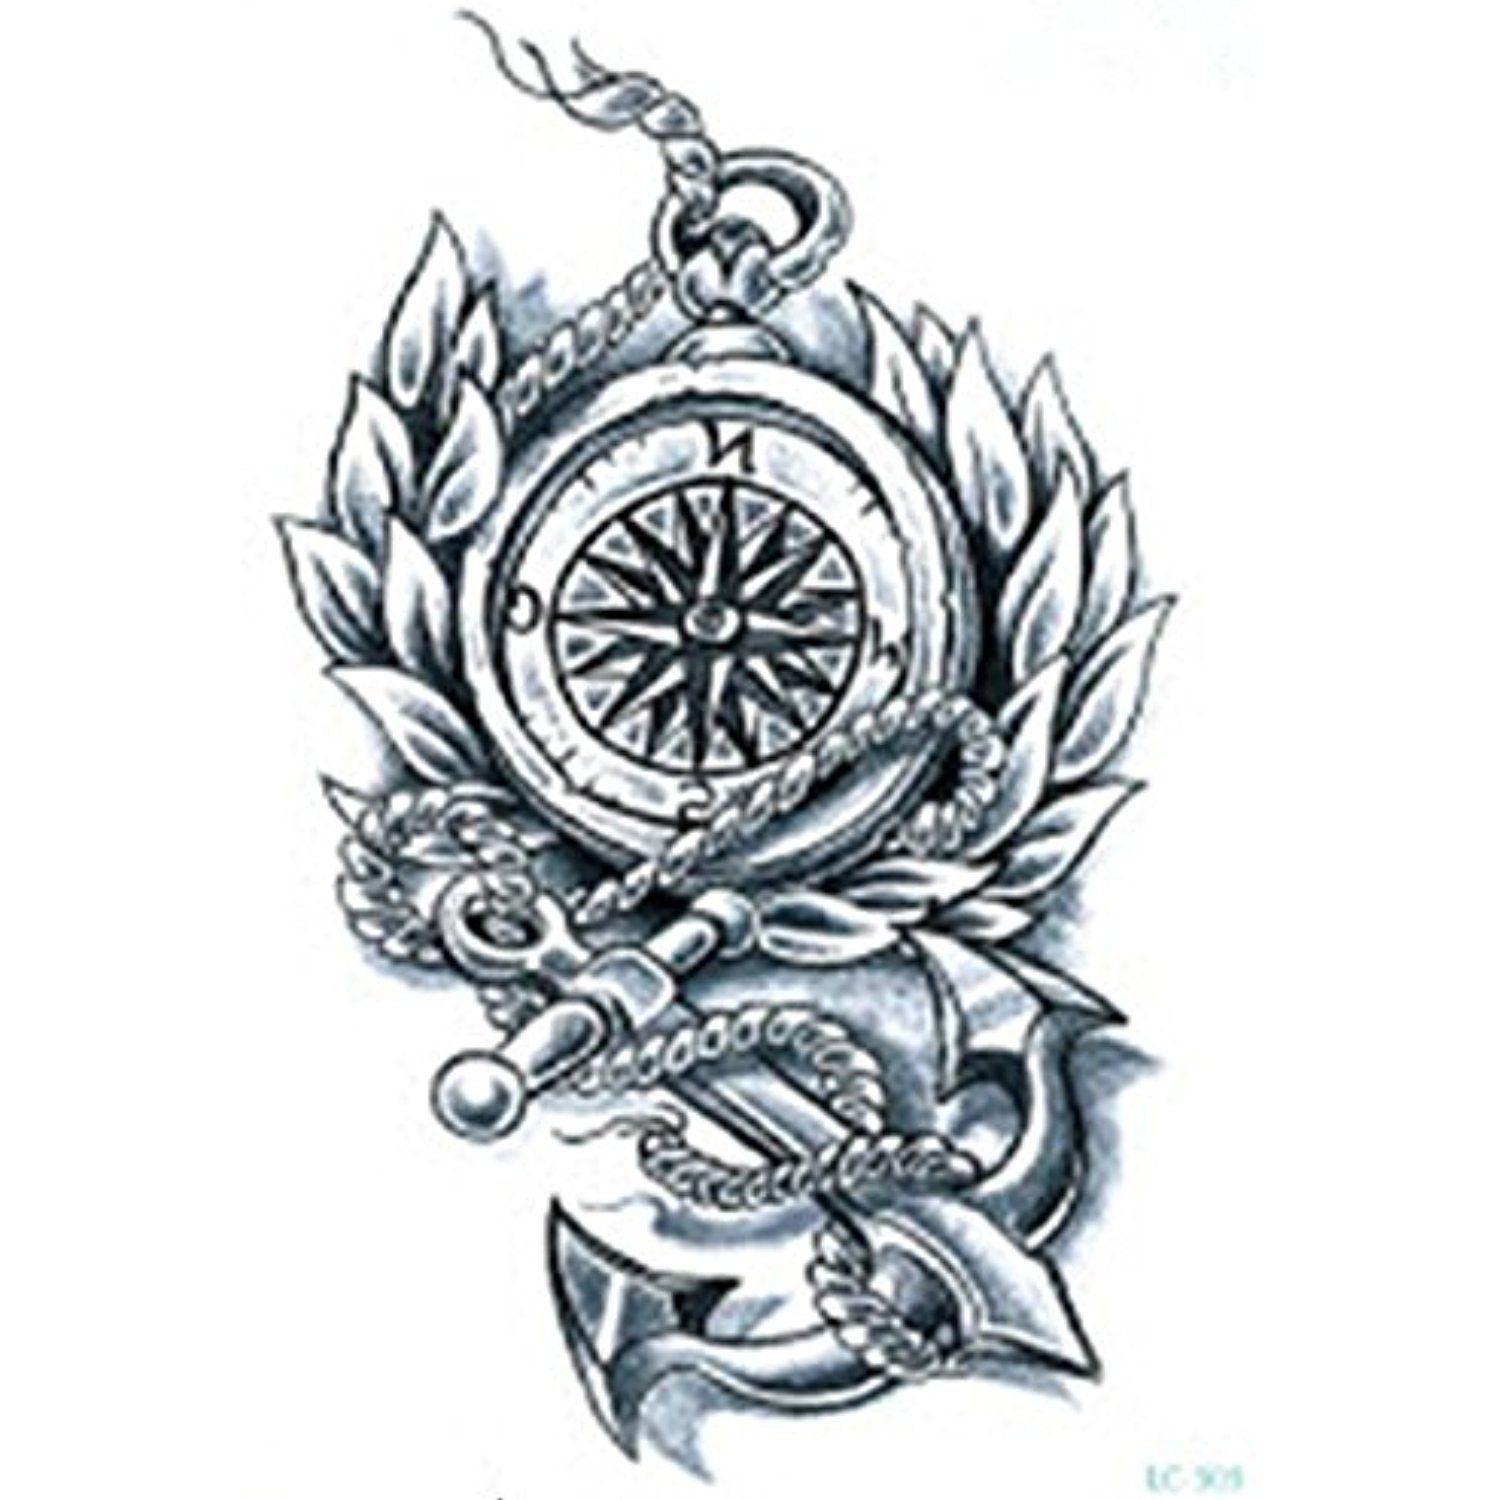 846922033e864 Set of 2 Waterproof Temporary Fake Tattoo Stickers Cool Vintage Compass  Anchor Big * Check out this great product. (This is an affiliate link) # ...